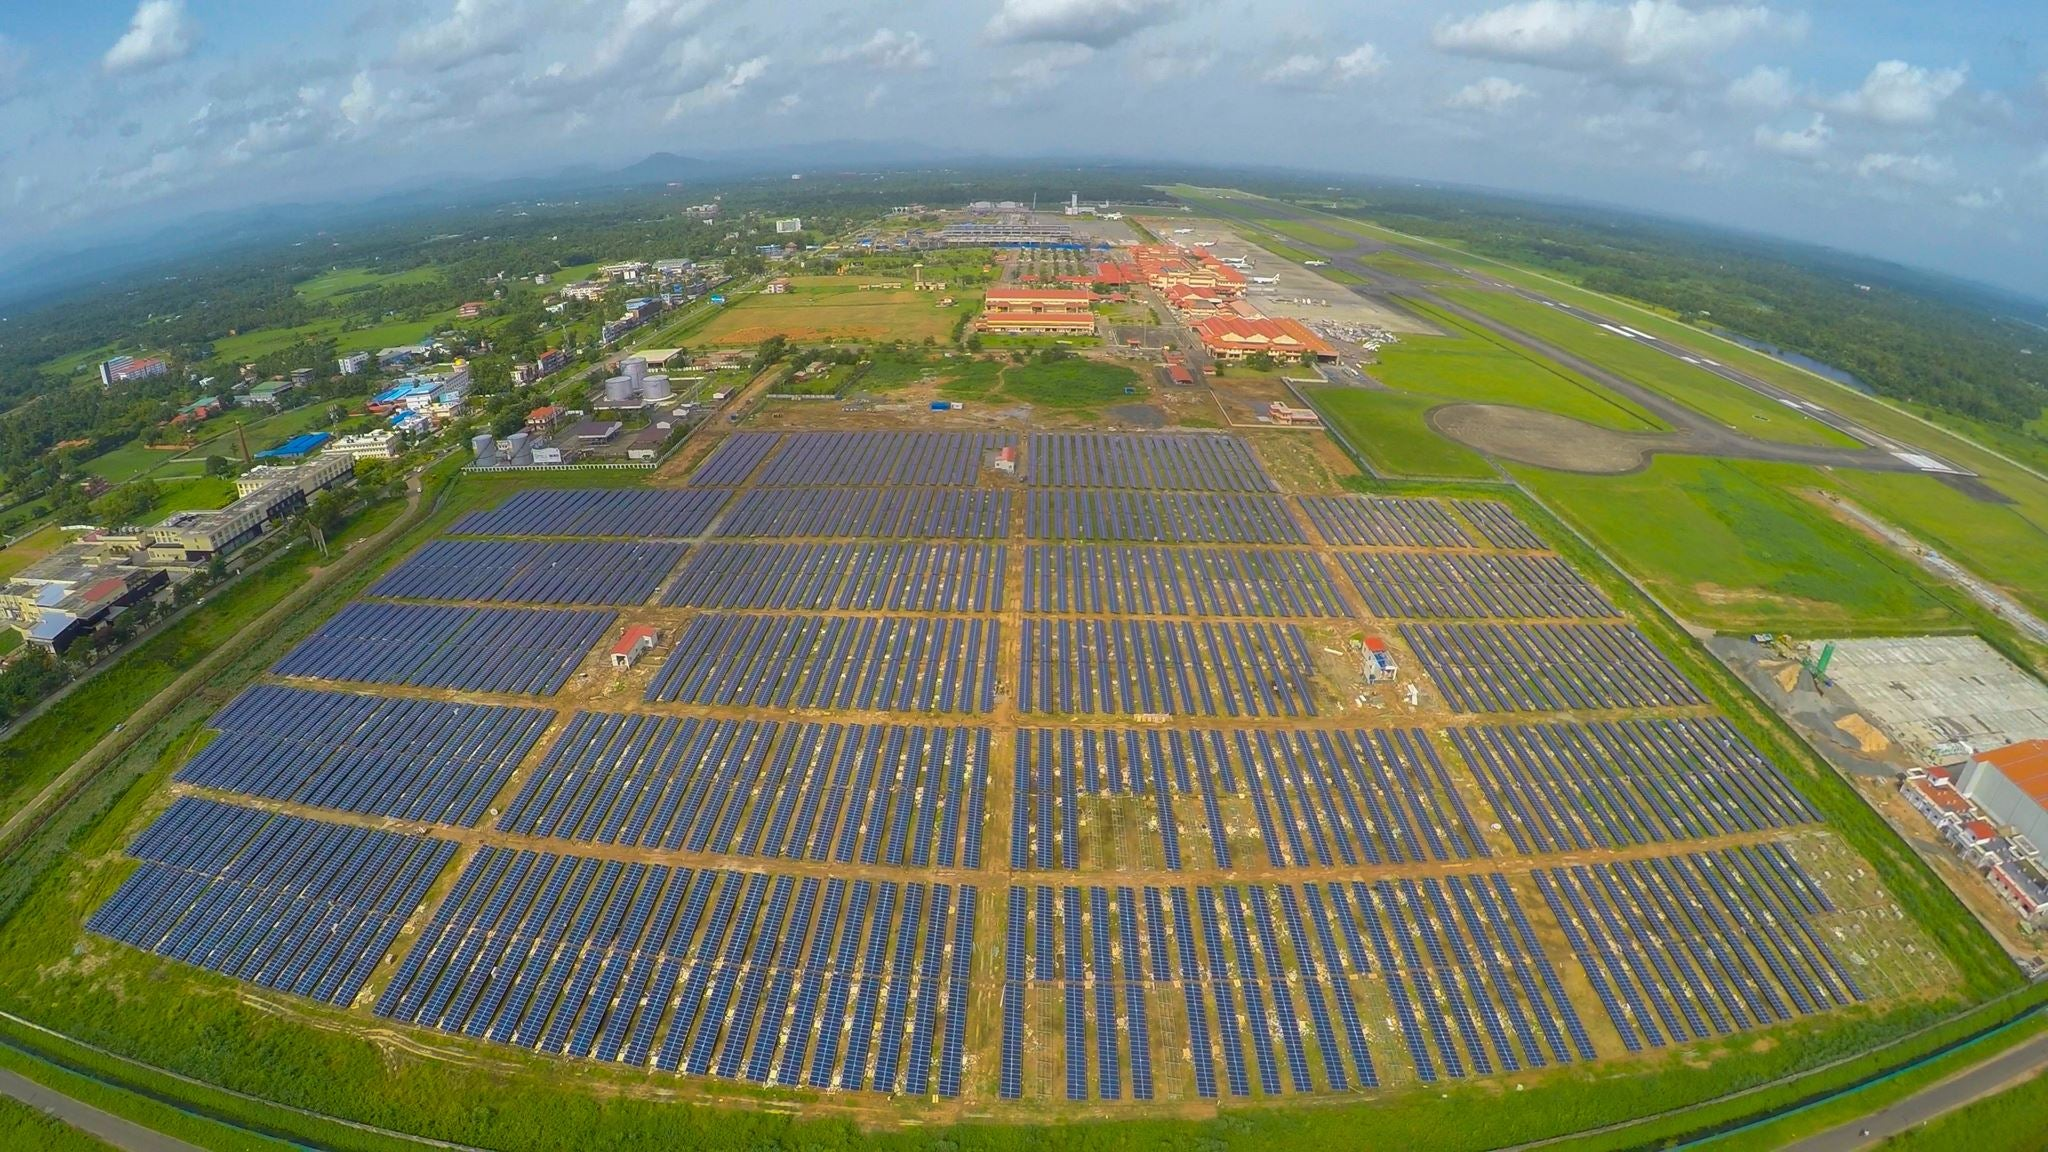 Here's the First Airport to Run 100% on Solar Power